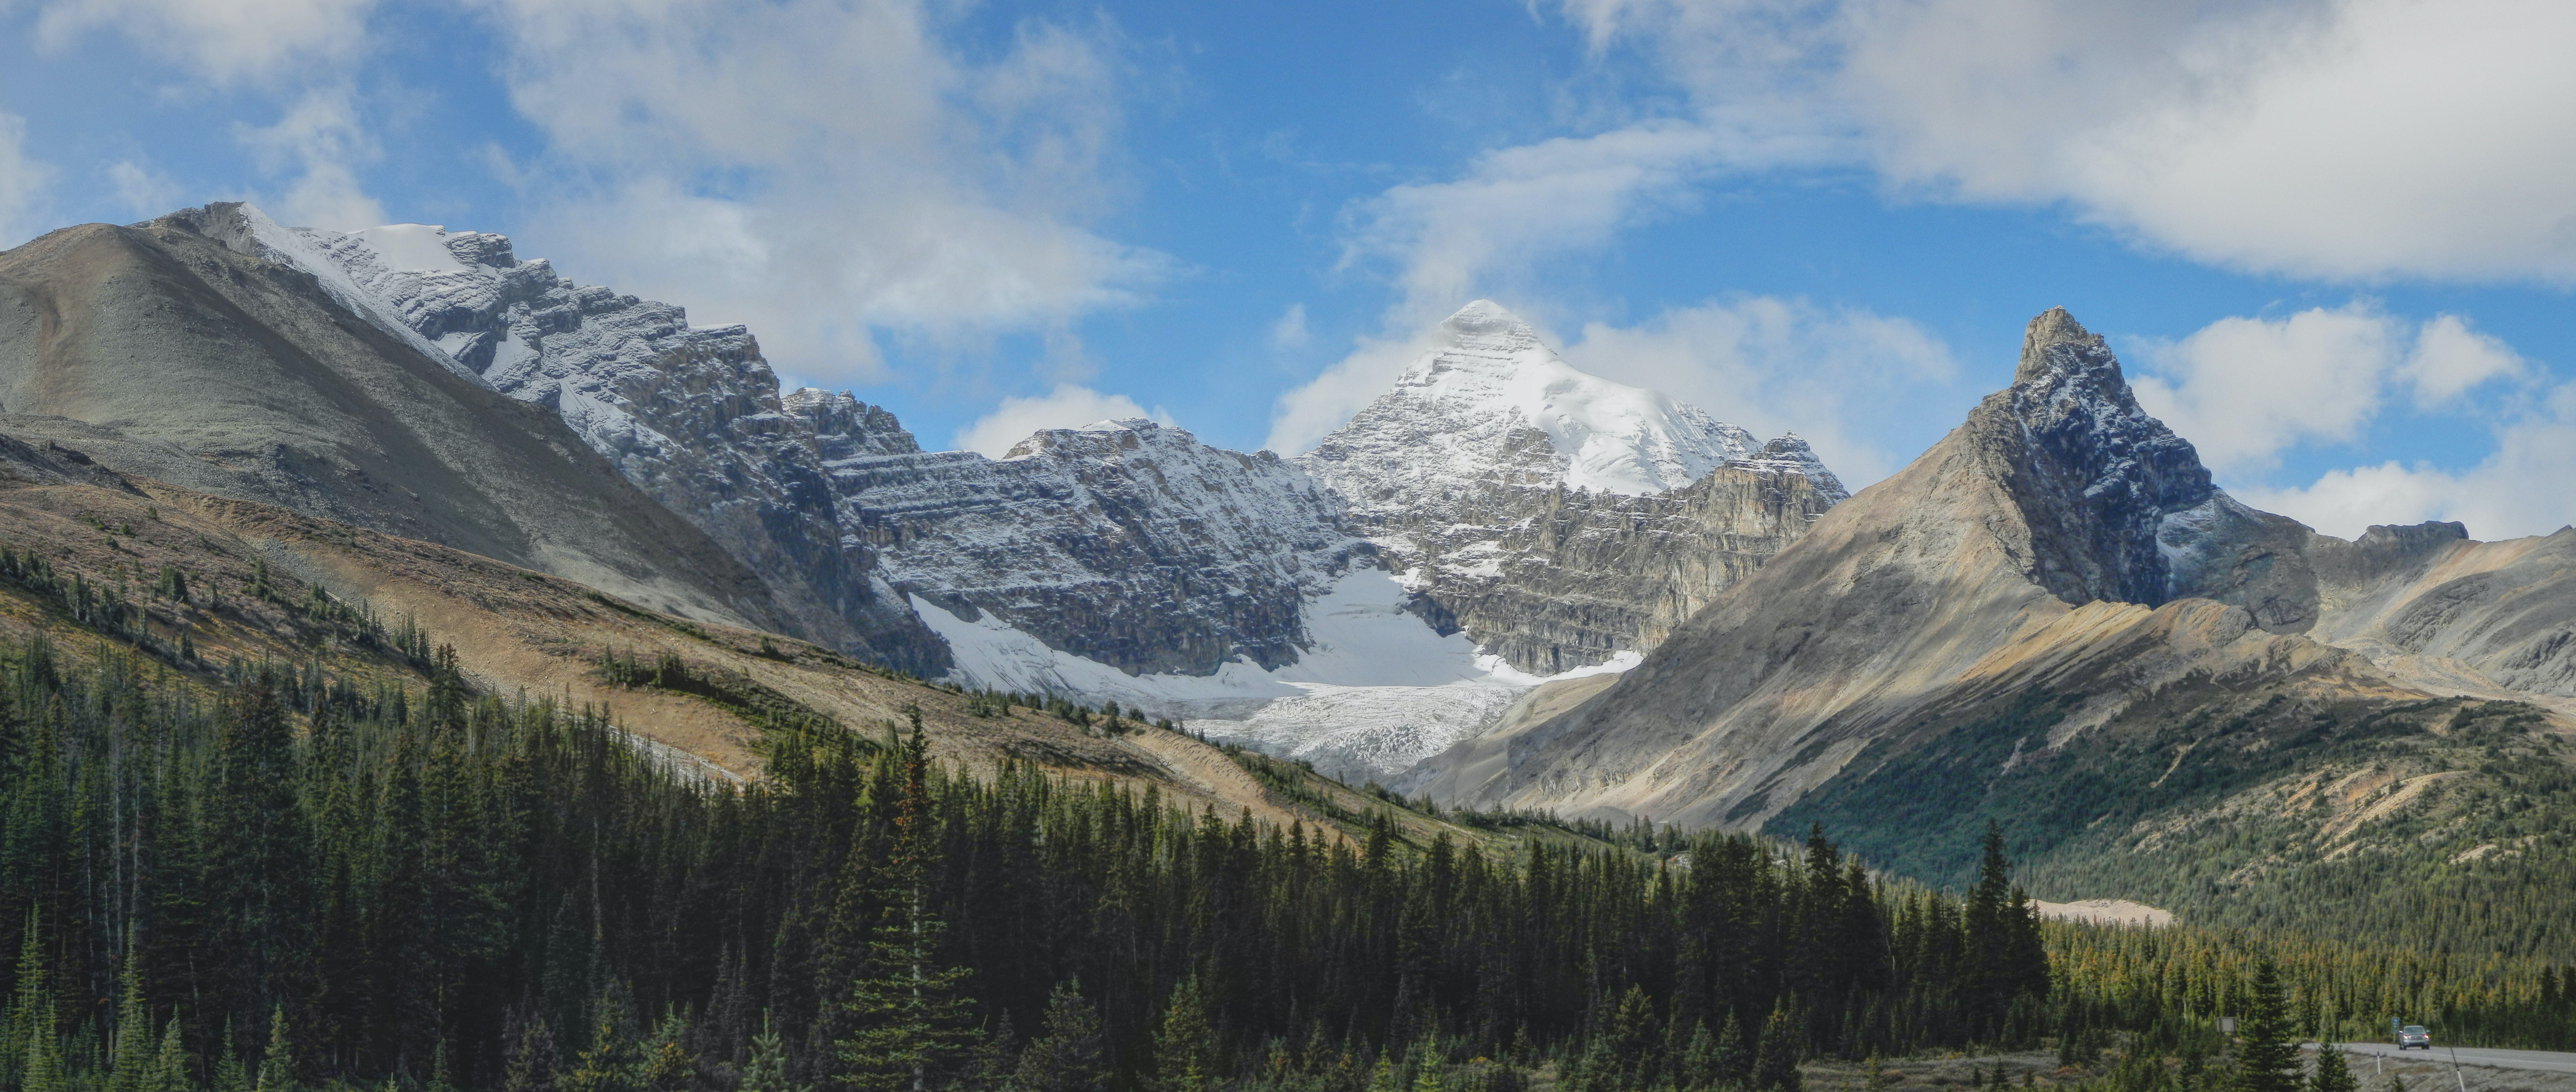 A panoramic shot of a forest at the foot of a mountain range with tall peaks and snowy crests